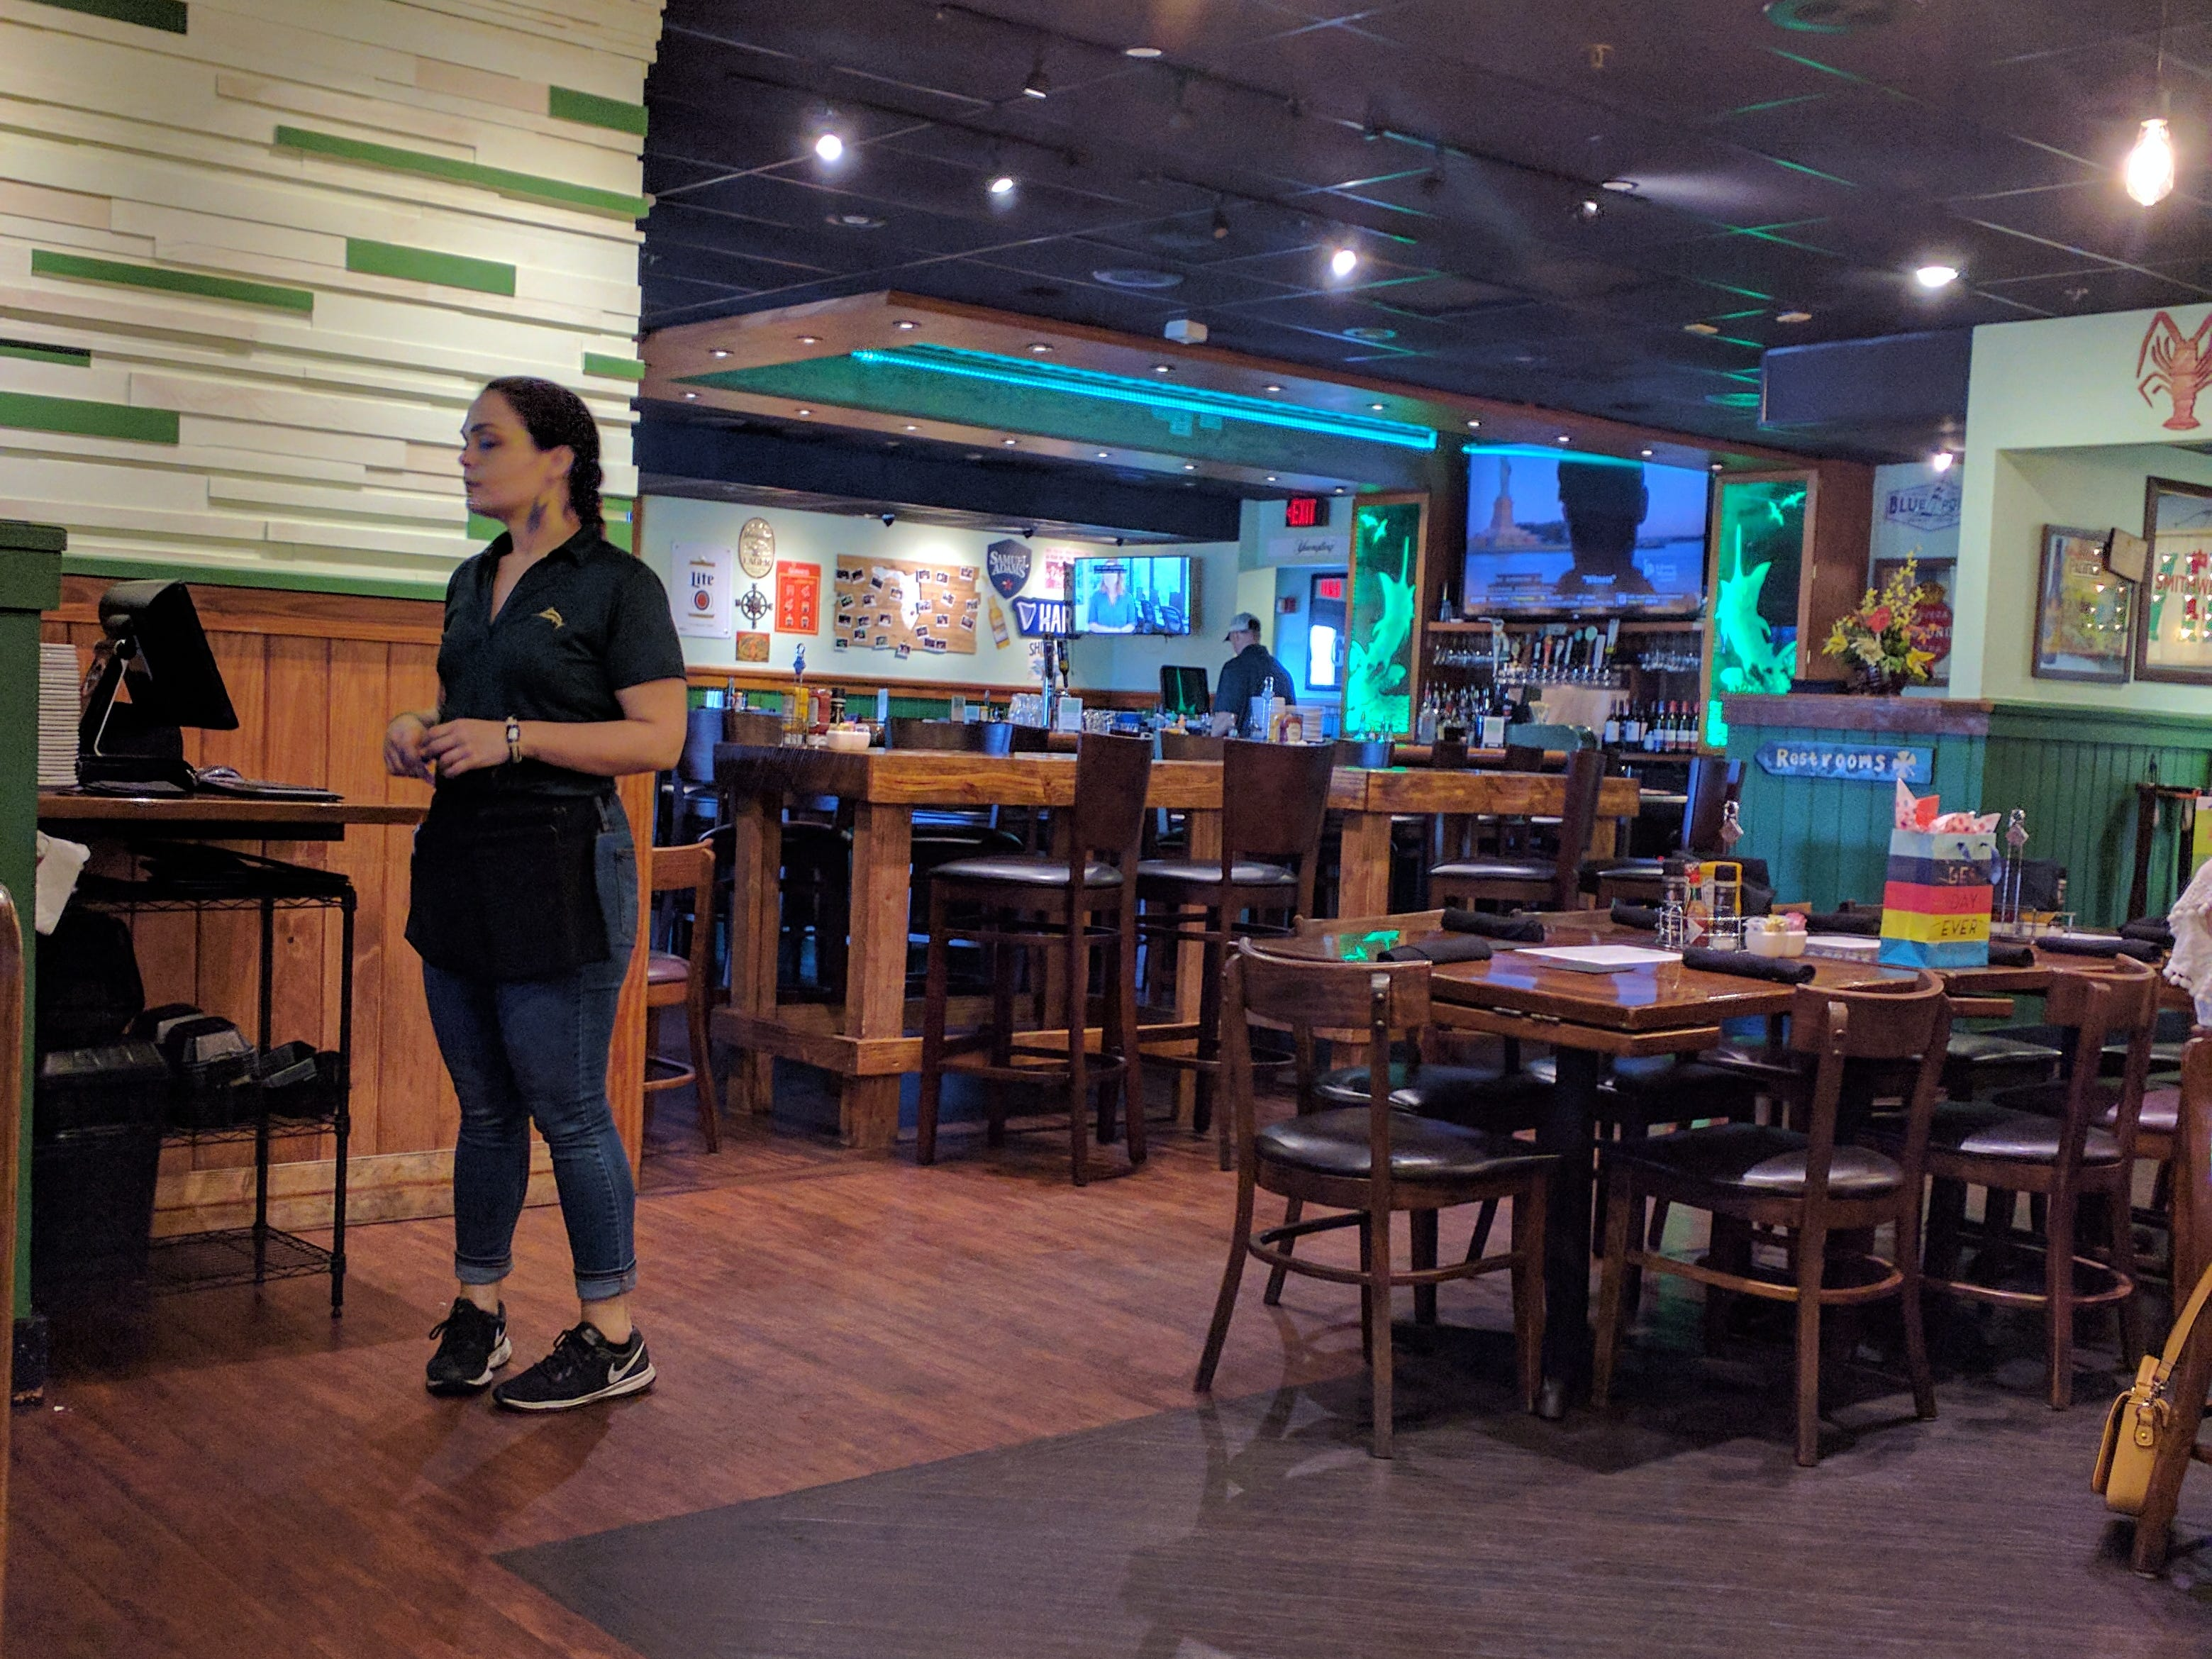 There's plenty of seating at the Green Marlin, located on U.S. 1 in Vero Beach.